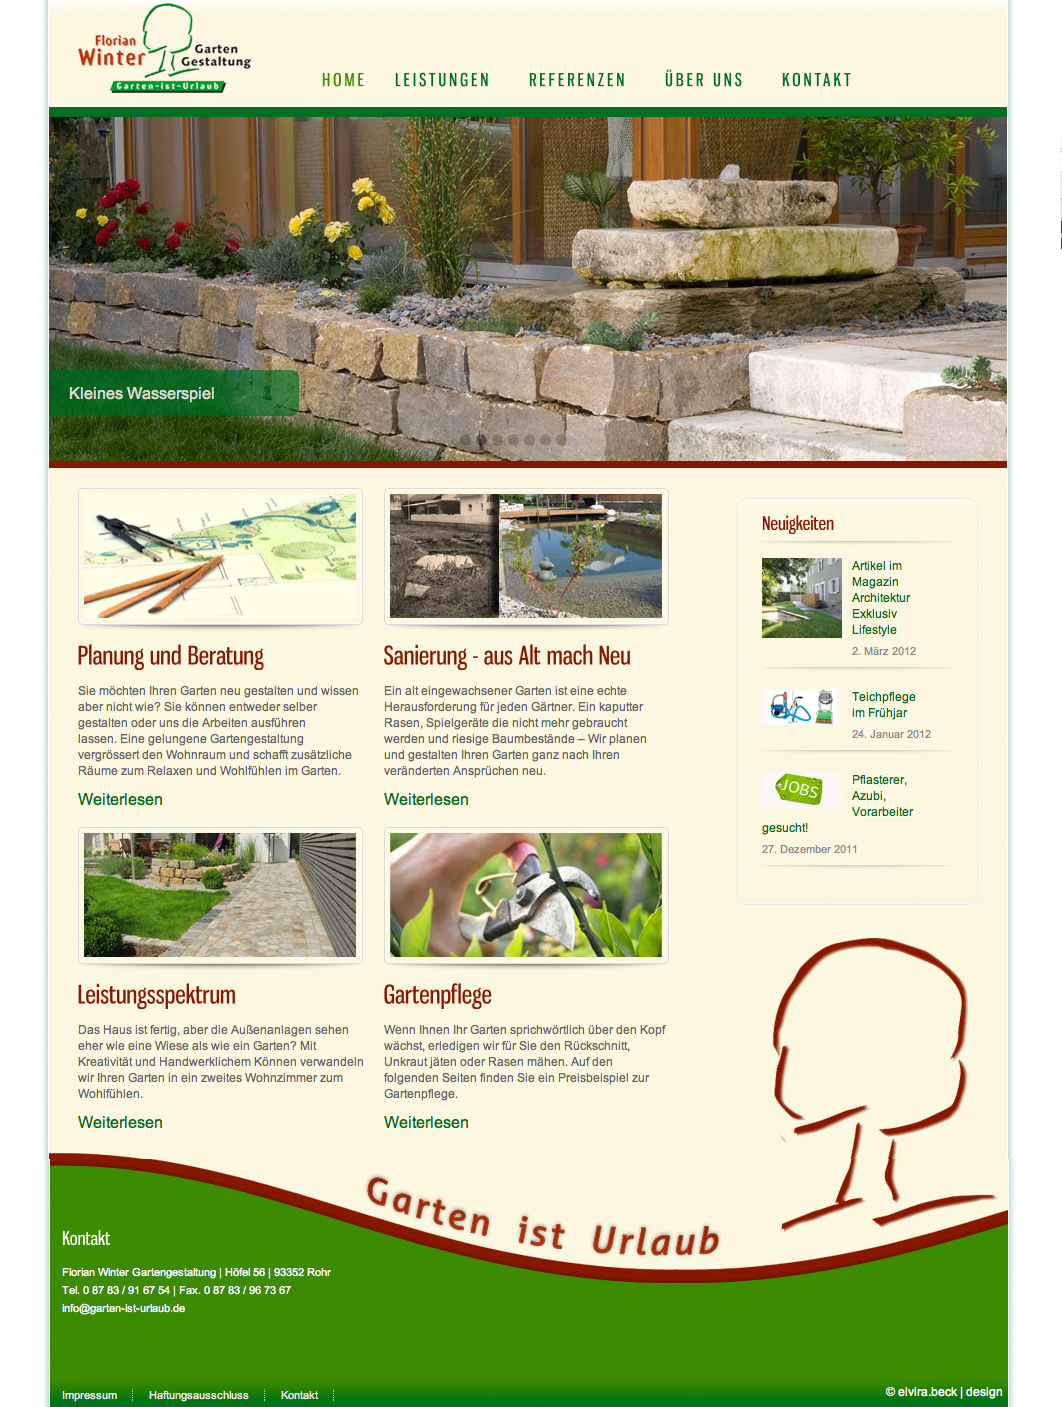 Re design webseite winter gartenbau rohr elvira beck design - Winter gartenbau ...